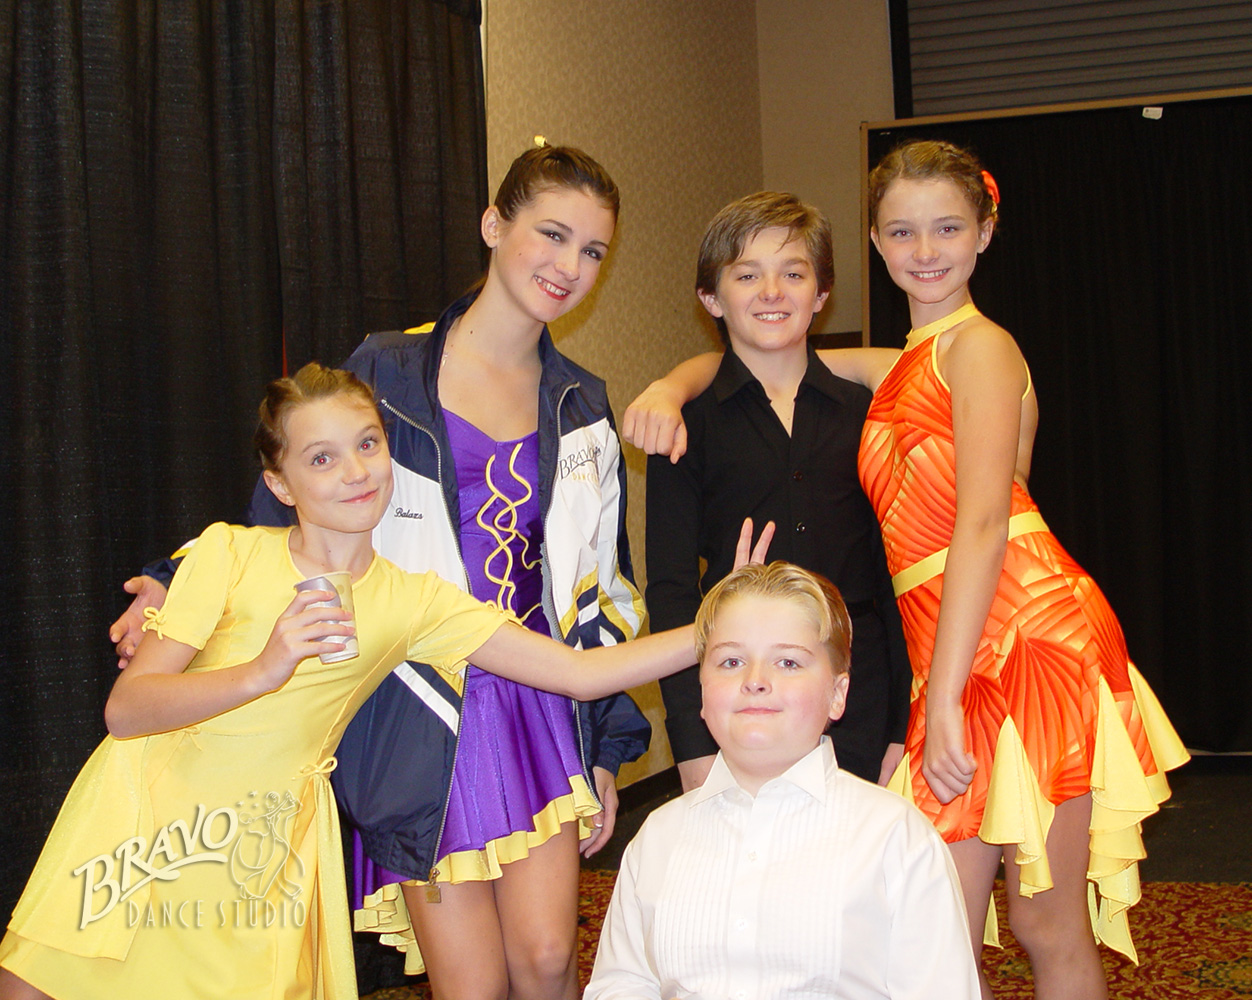 Bravo-Kids-DanceSport-1-(2).jpg